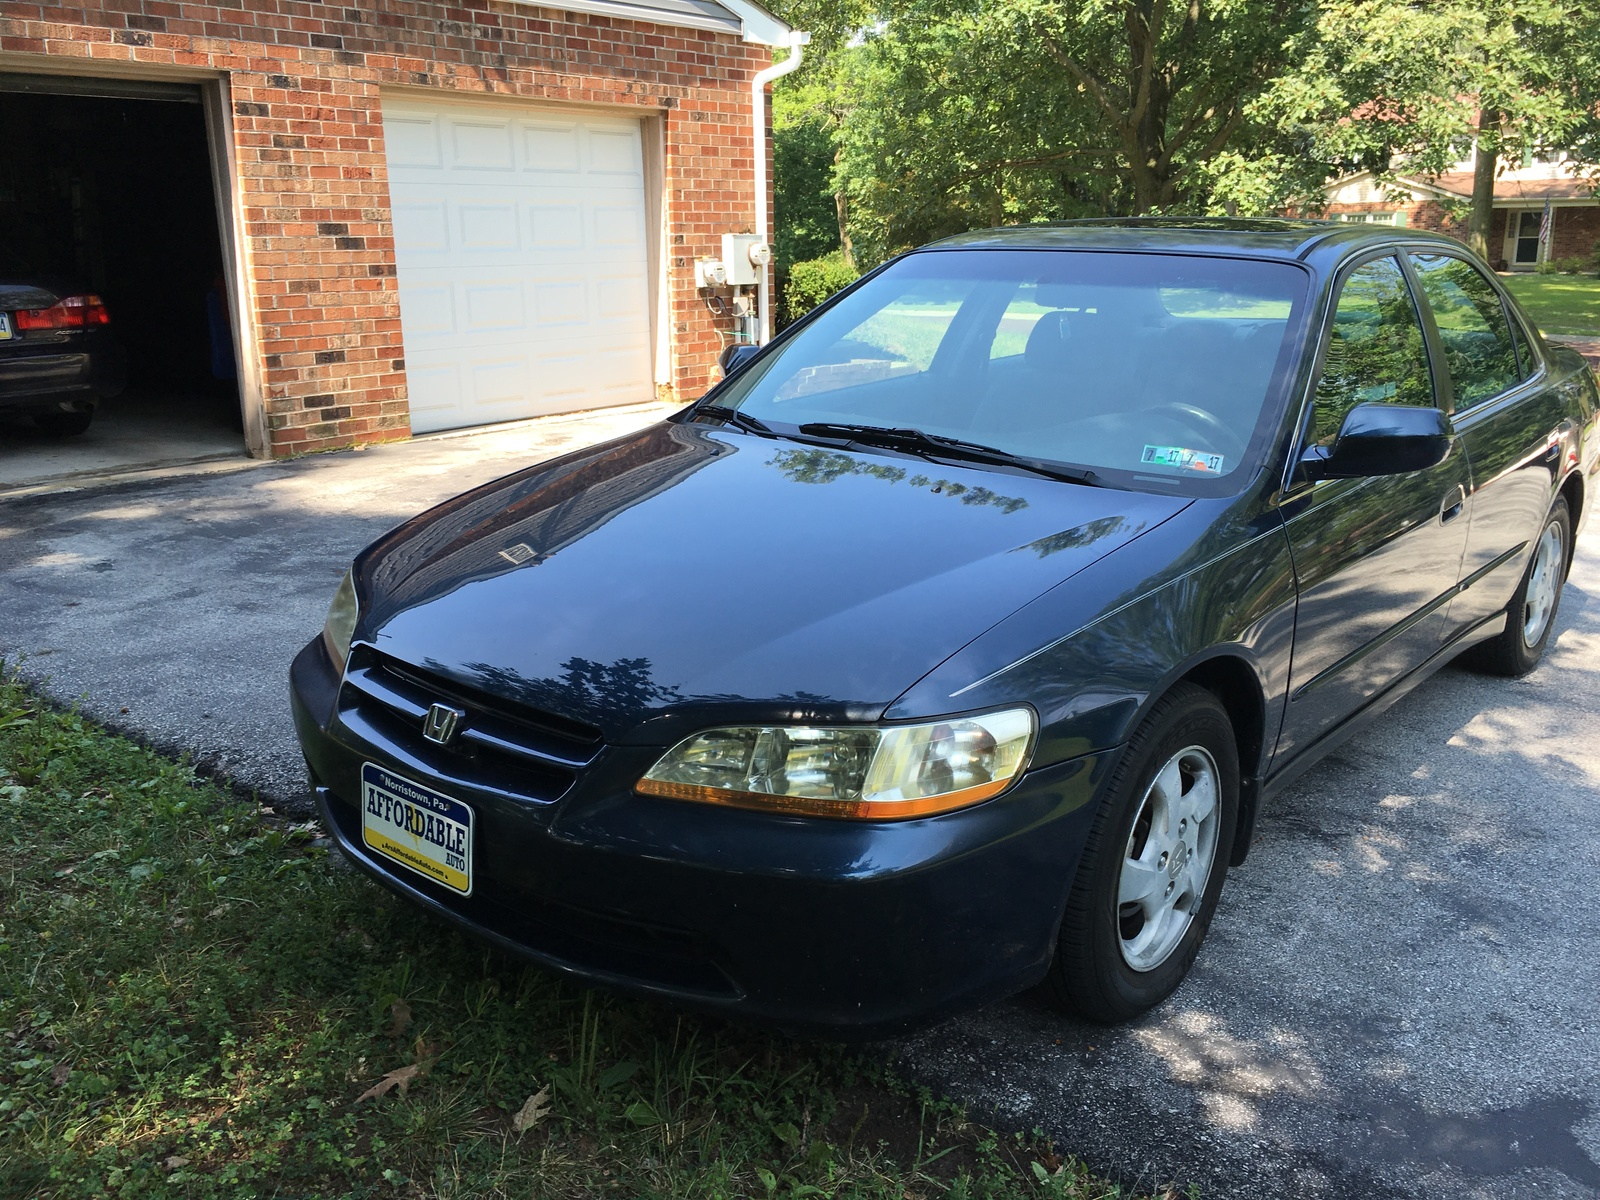 I Have A 1999 Honda Accord Ex Transmission That I Want To Pull U0026 Replace In  A 2000 Honda Accord LX Model Both Are 4 Door Sedan 2.3 L 4 Cylinder